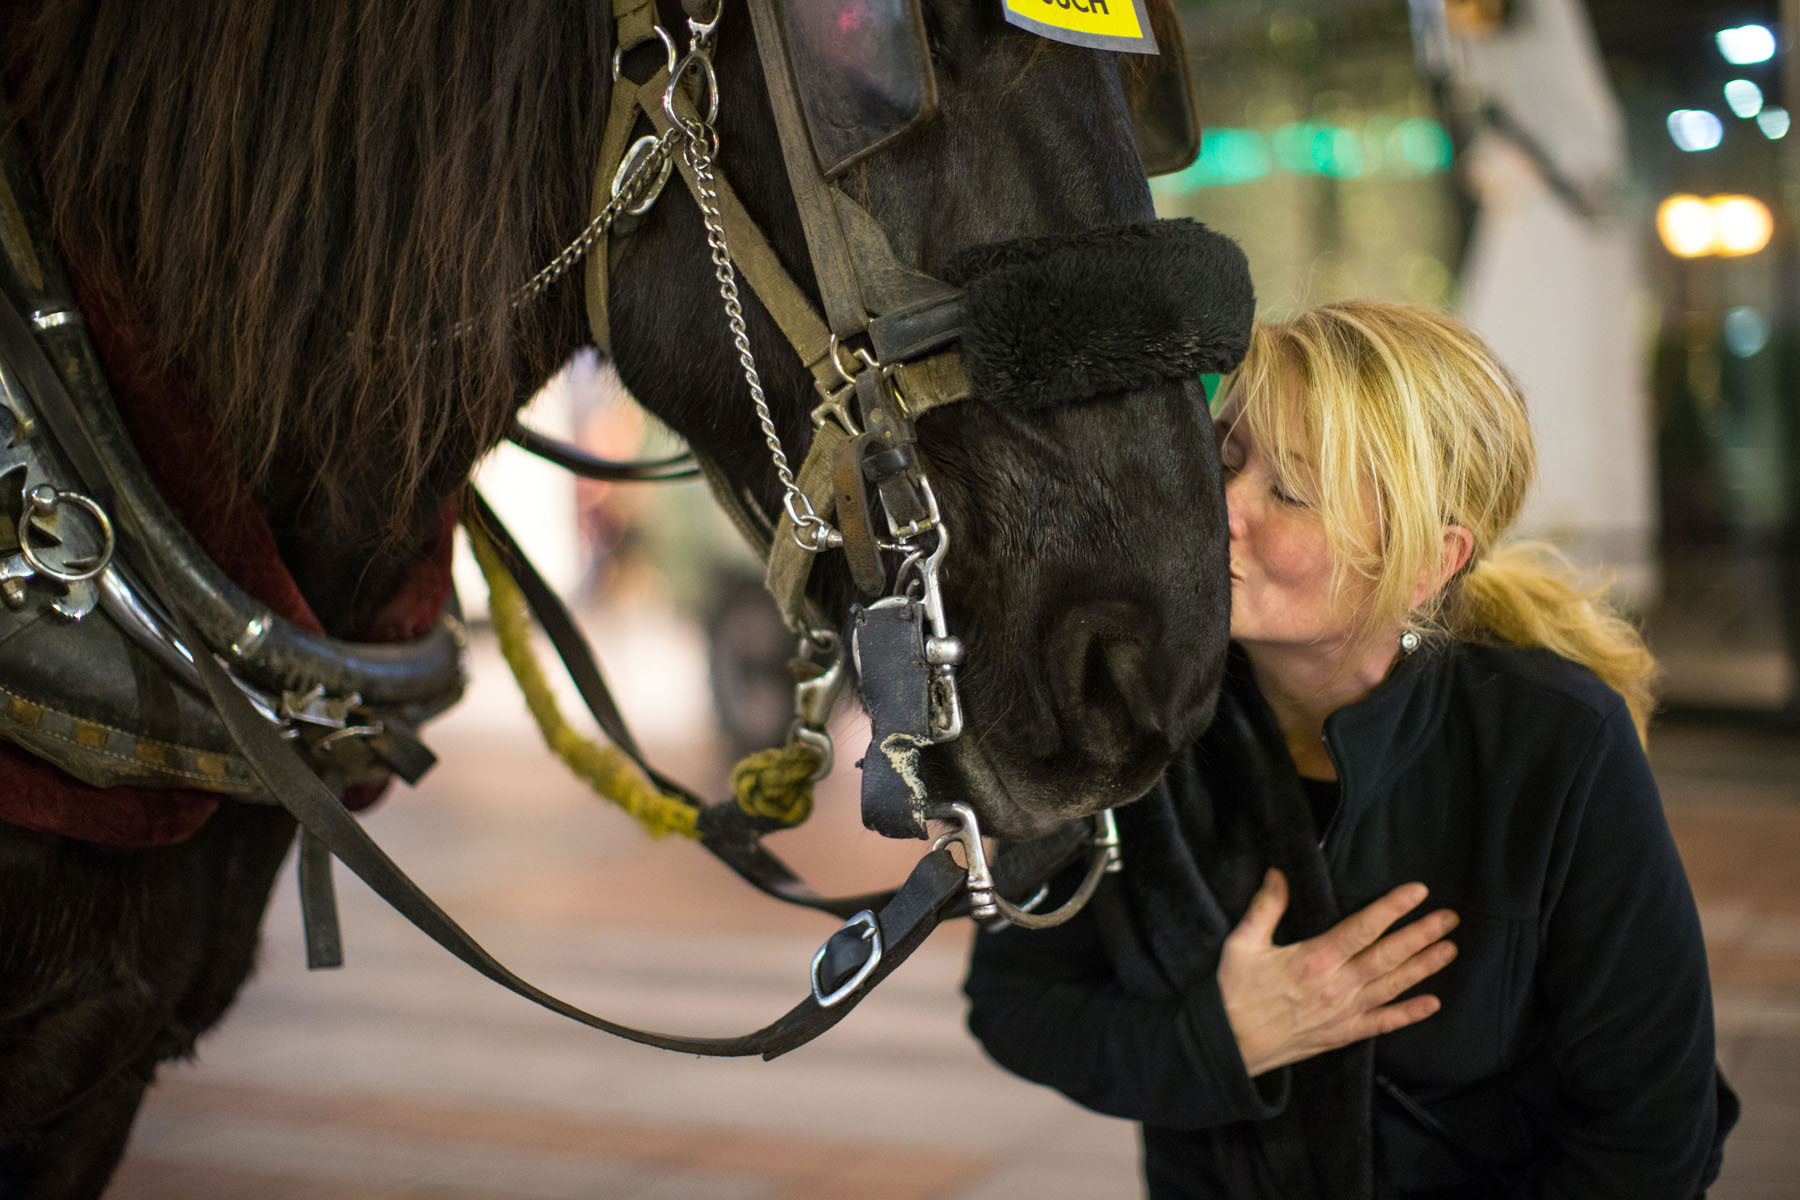 Tanya Therrien of White Rock, British Columbia, Canada give Amos, an 11 year-old Percheron draft horse from Sealth Horse Carriages, a kiss outside Westlake Center in Seattle, WA on December 17, 2017. {quote}I'm so in love with him,{quote} Therrien says.{quote} I want to take him home.{quote}  (© Karen Ducey)